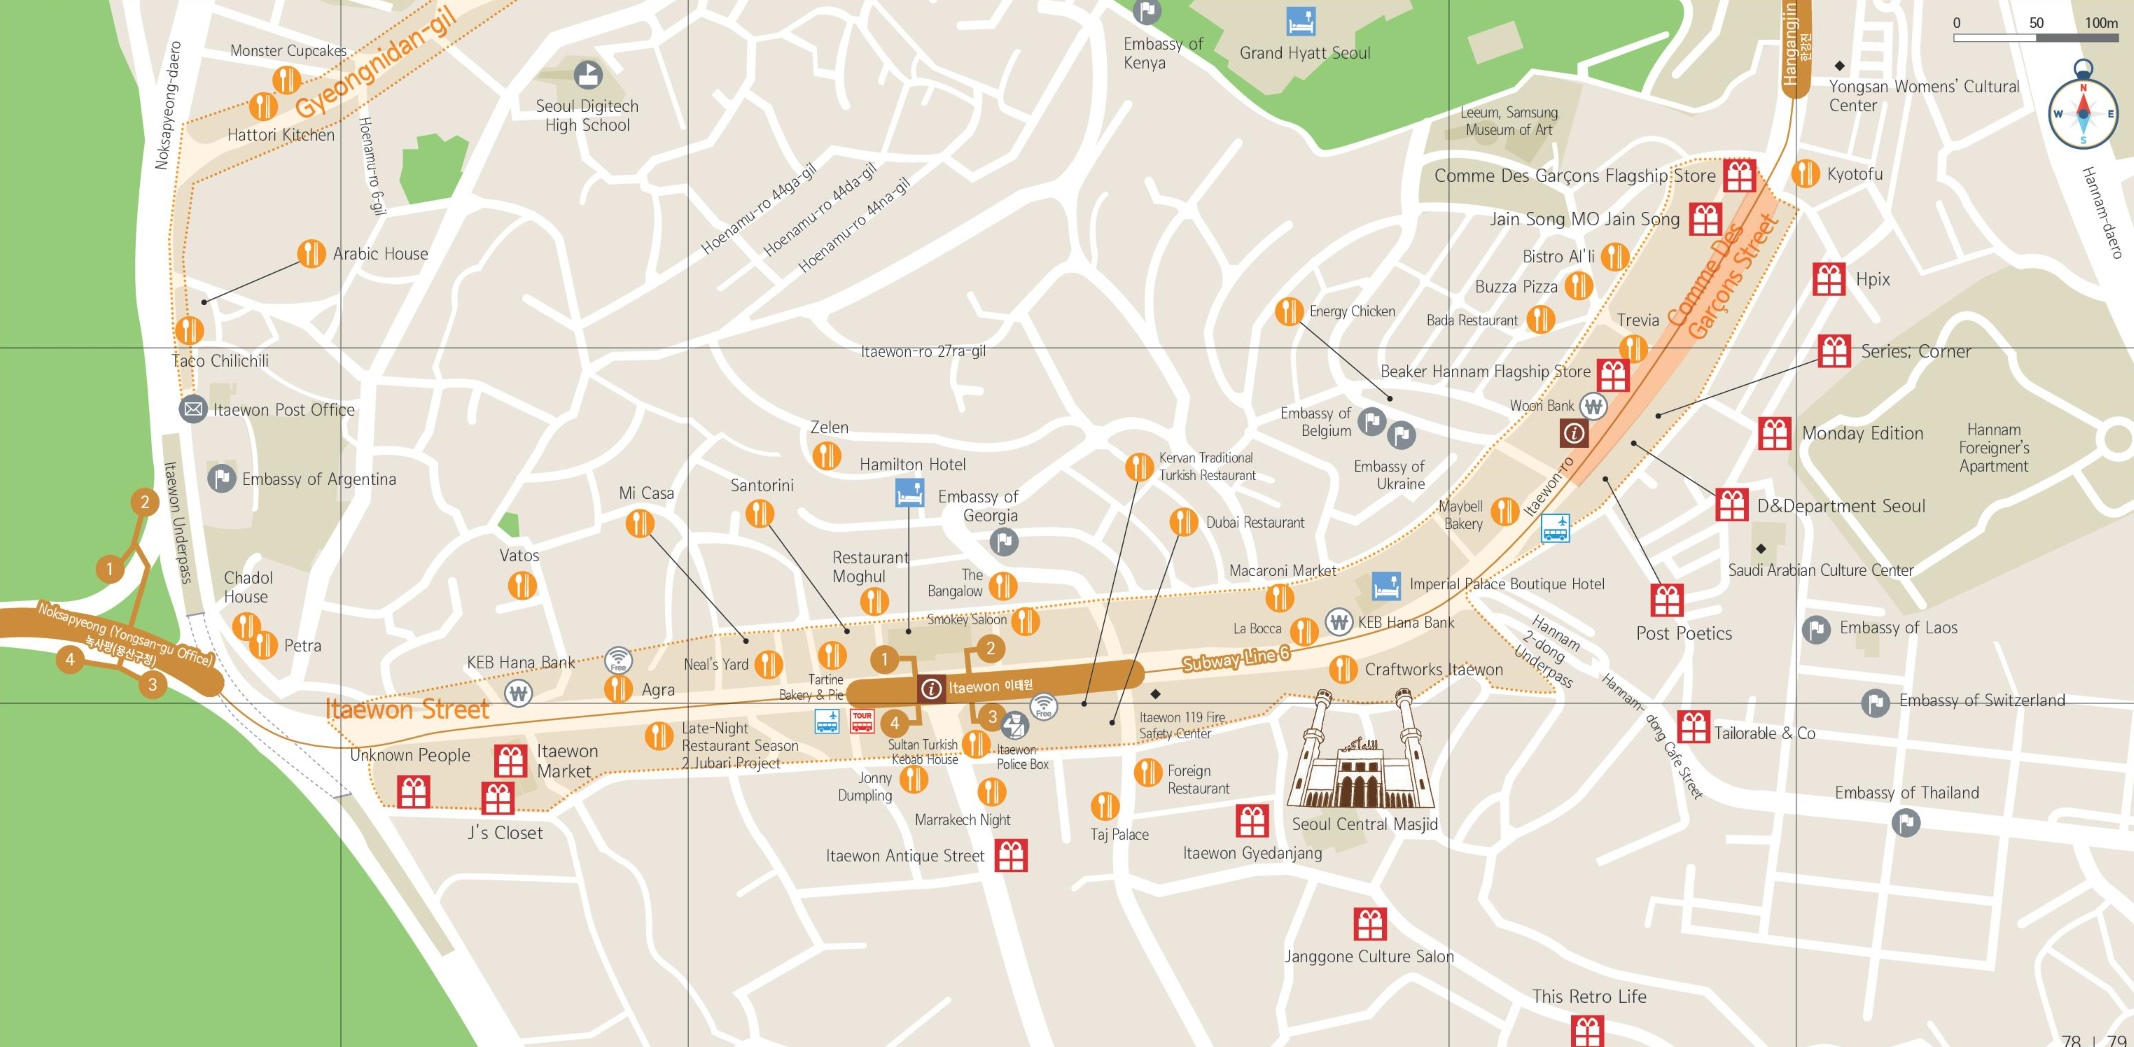 Itaewon and Hannamdong shopping map Seoul